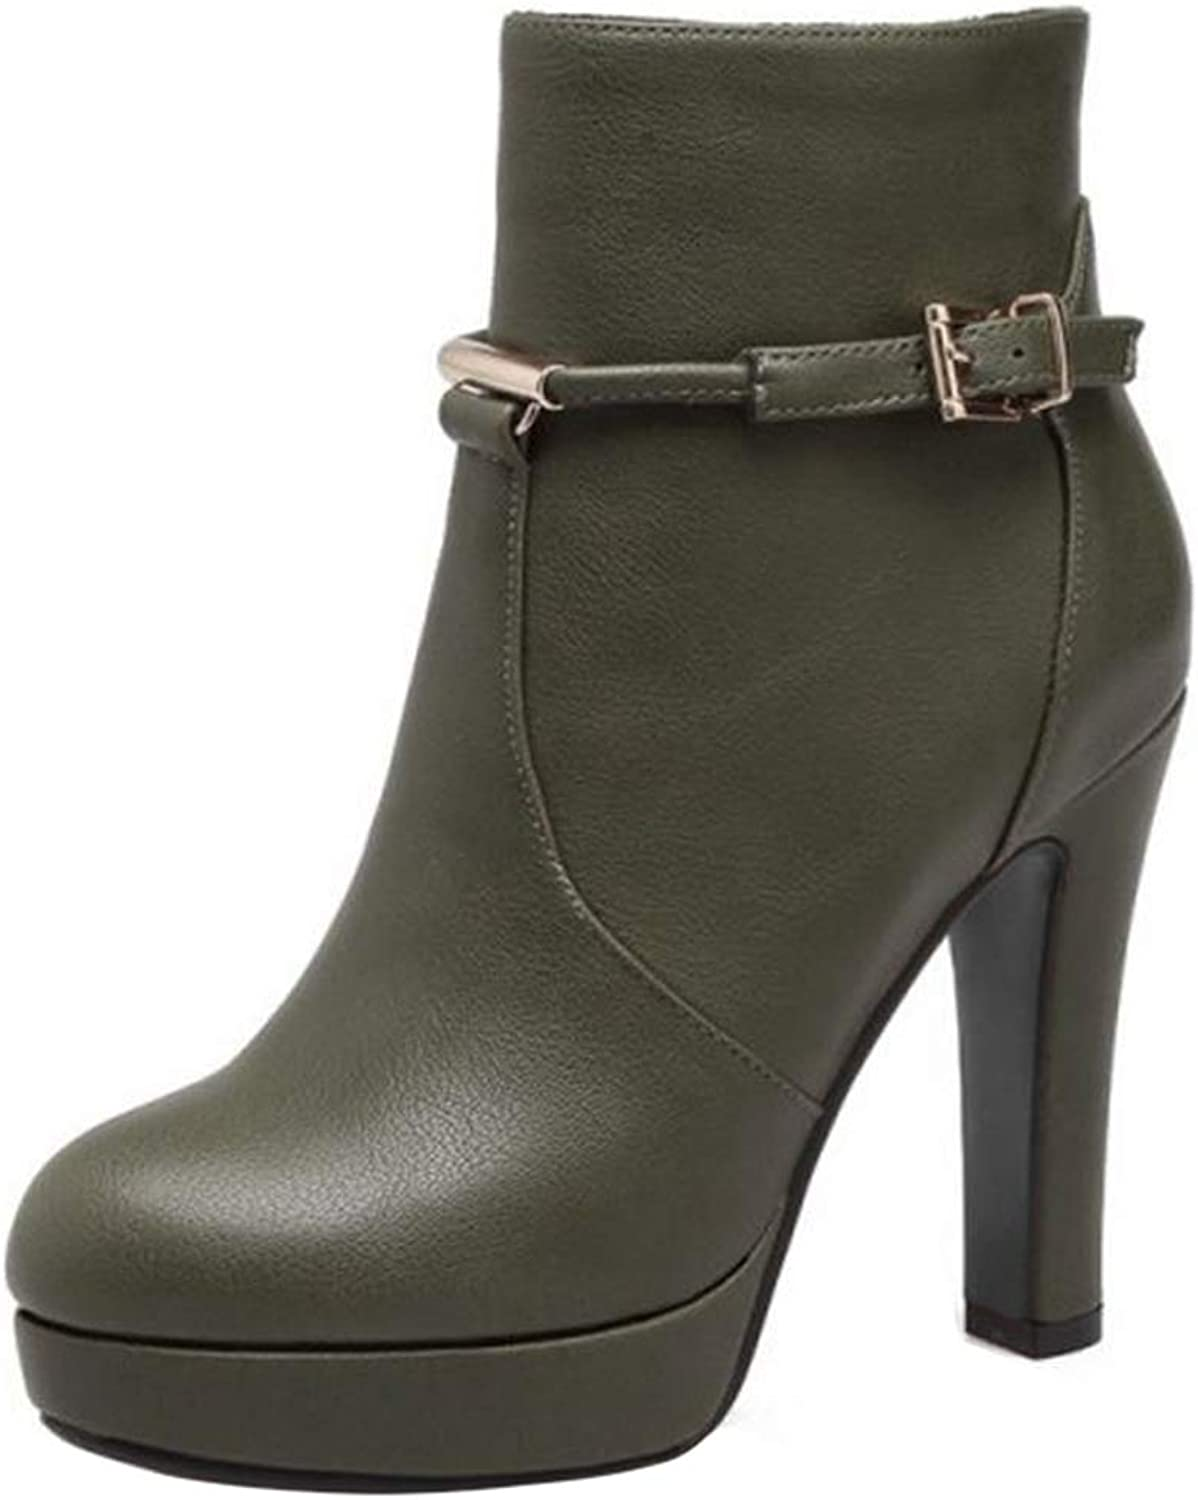 Onewus Women Casual Boots Fashion Ankle Boots